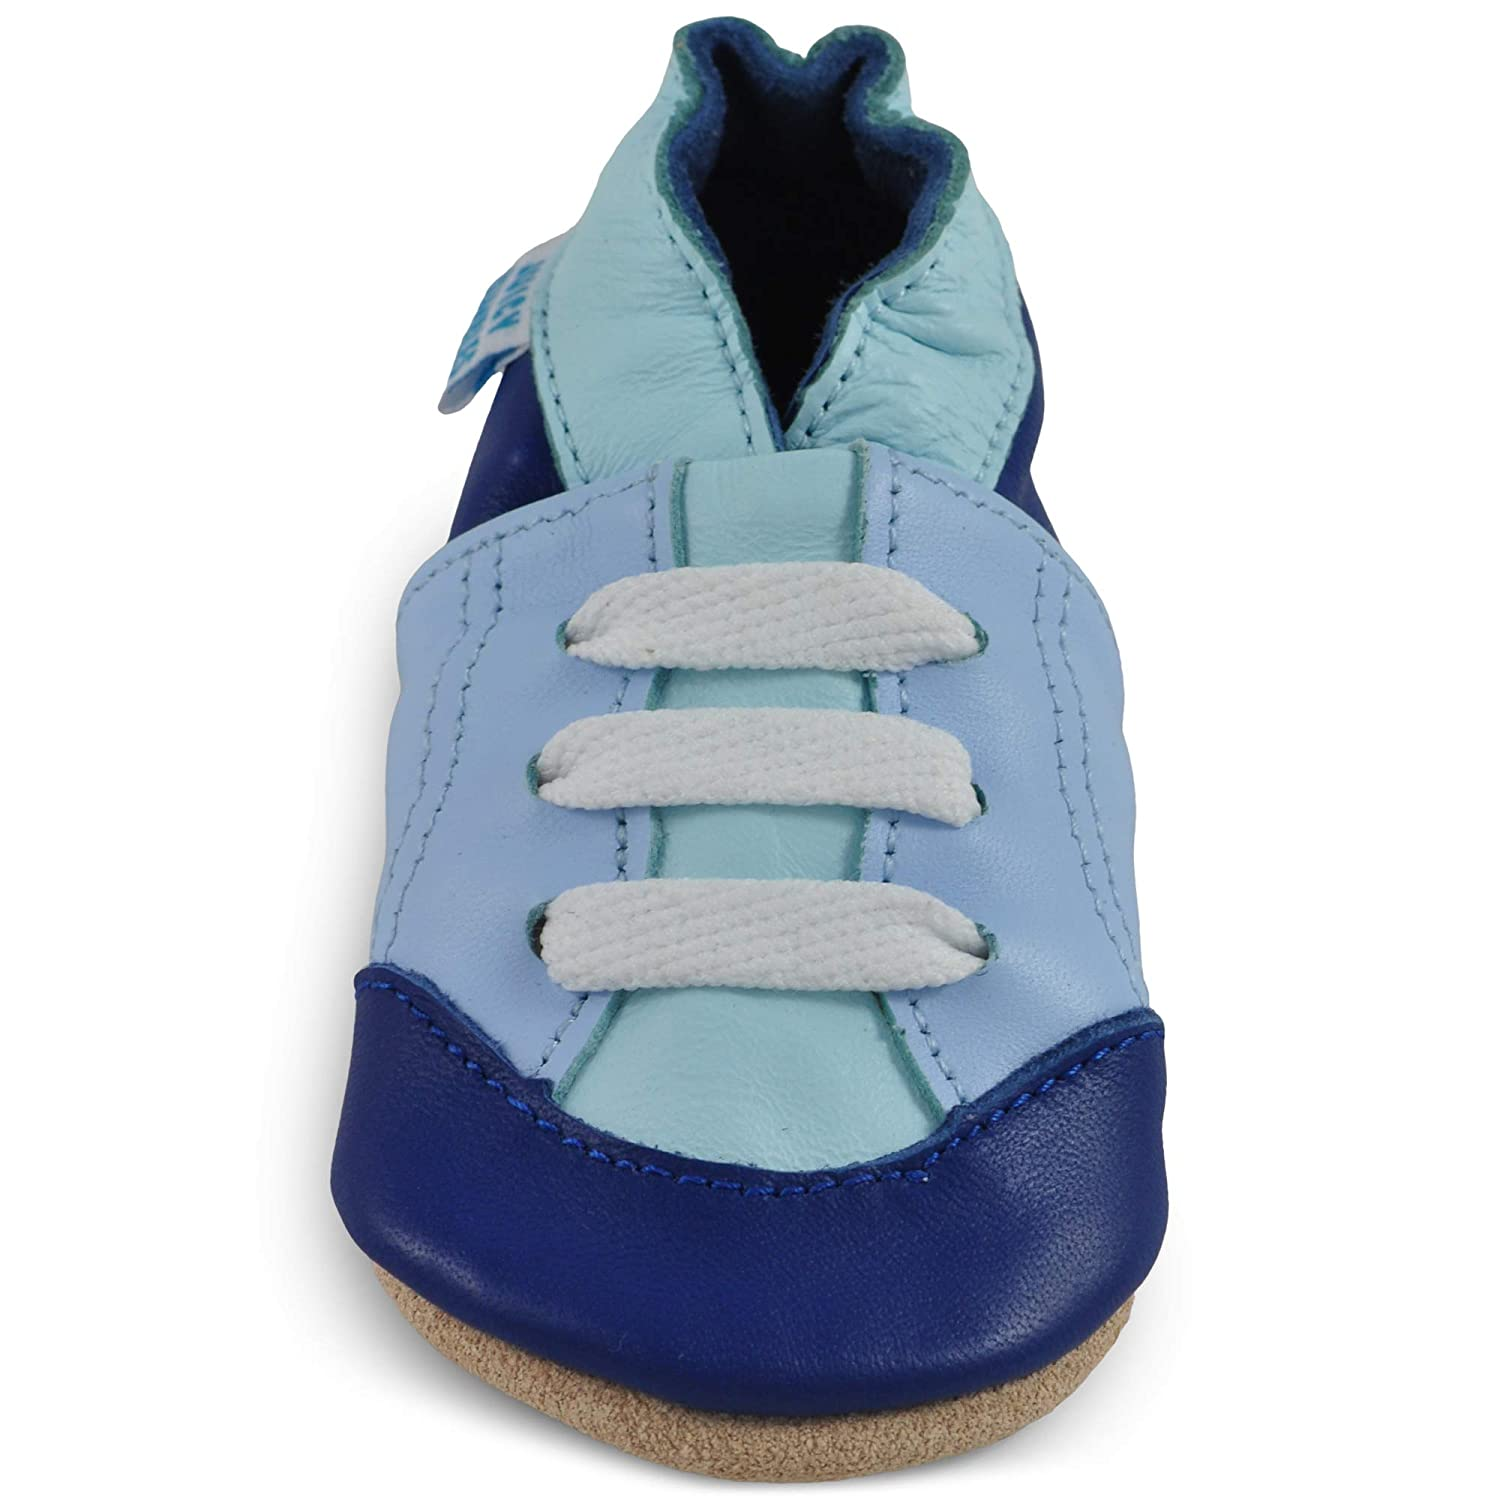 Leather Toddler Shoes Baby Boy Shoes Baby Walking Shoes Baby Shoes with Soft Sole Baby Girl Shoes